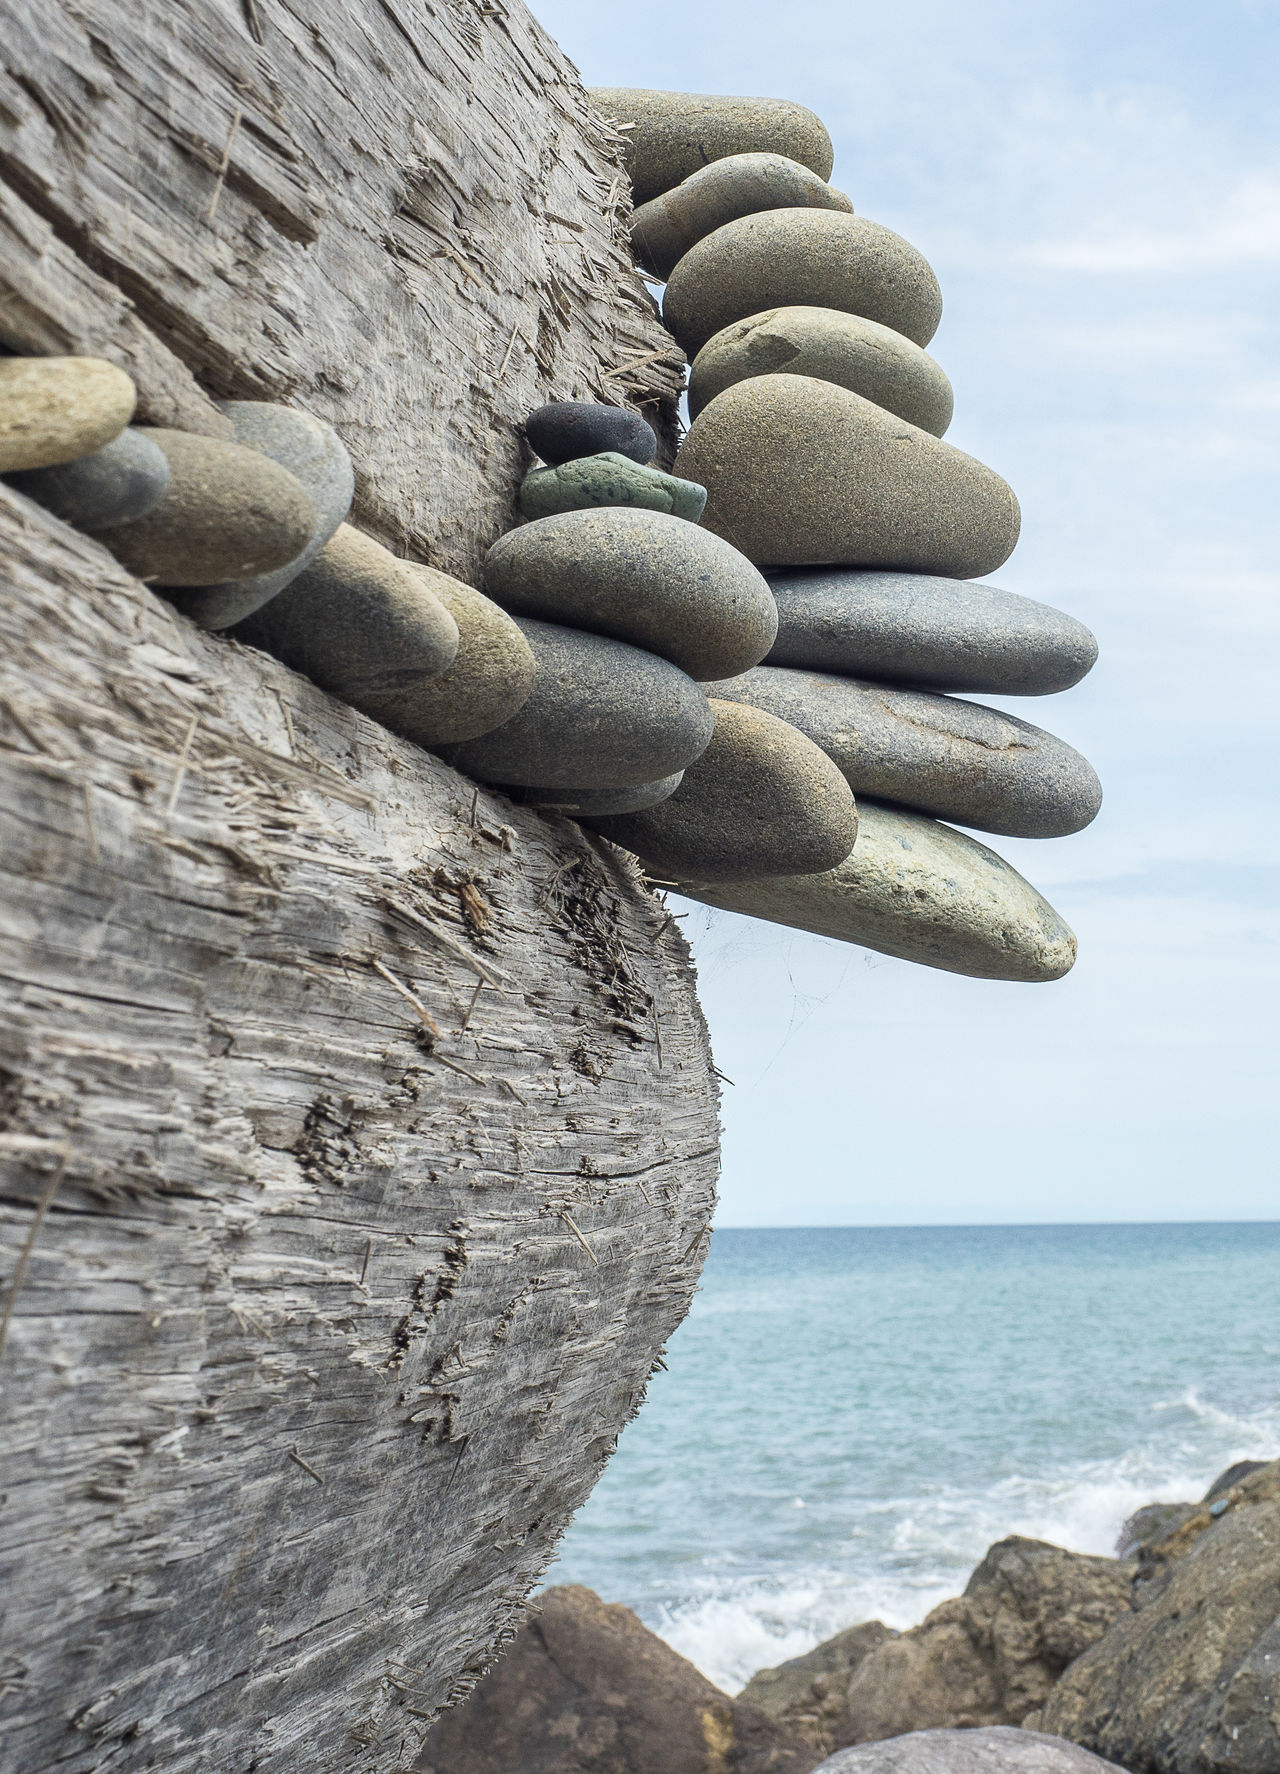 Balance Beauty In Nature Close-up Day Horizon Over Water Nature No People Outdoors Rock - Object Rock Formation Scenics Sea Sky Stack Water